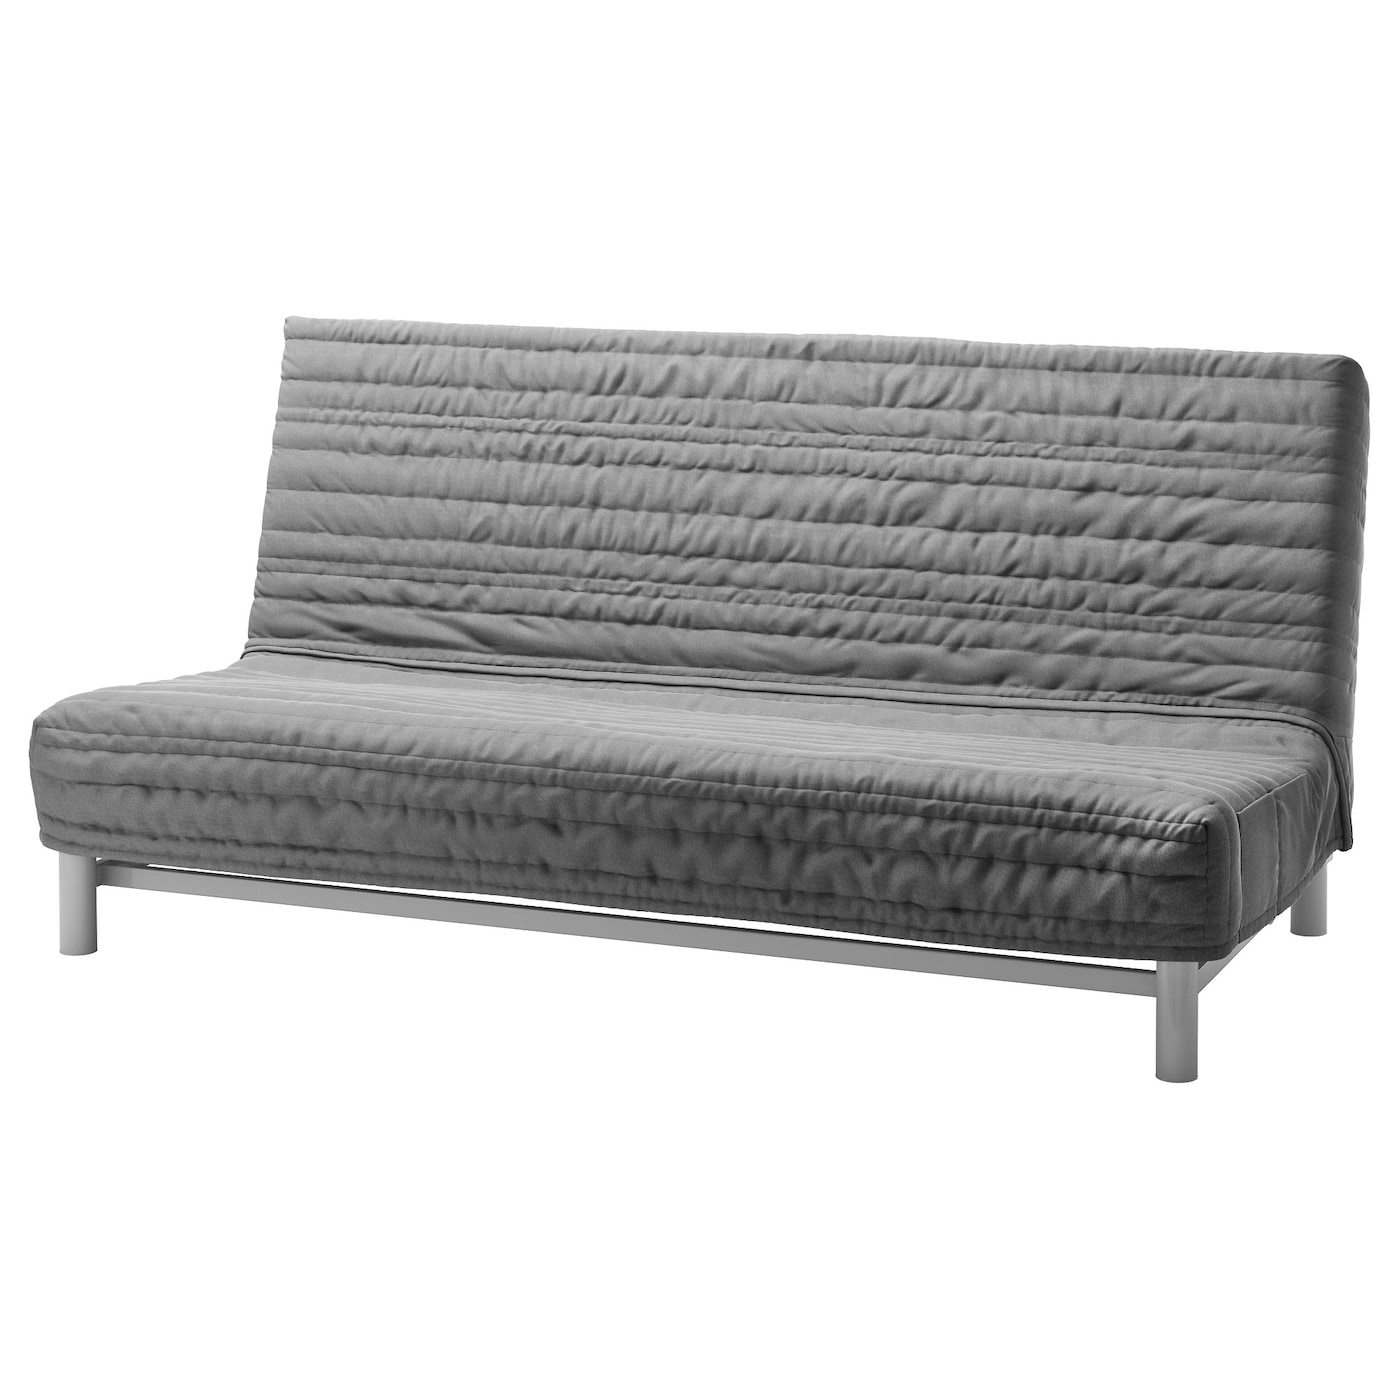 BEDDINGE Threeseat sofabed cover Knisa light grey IKEA